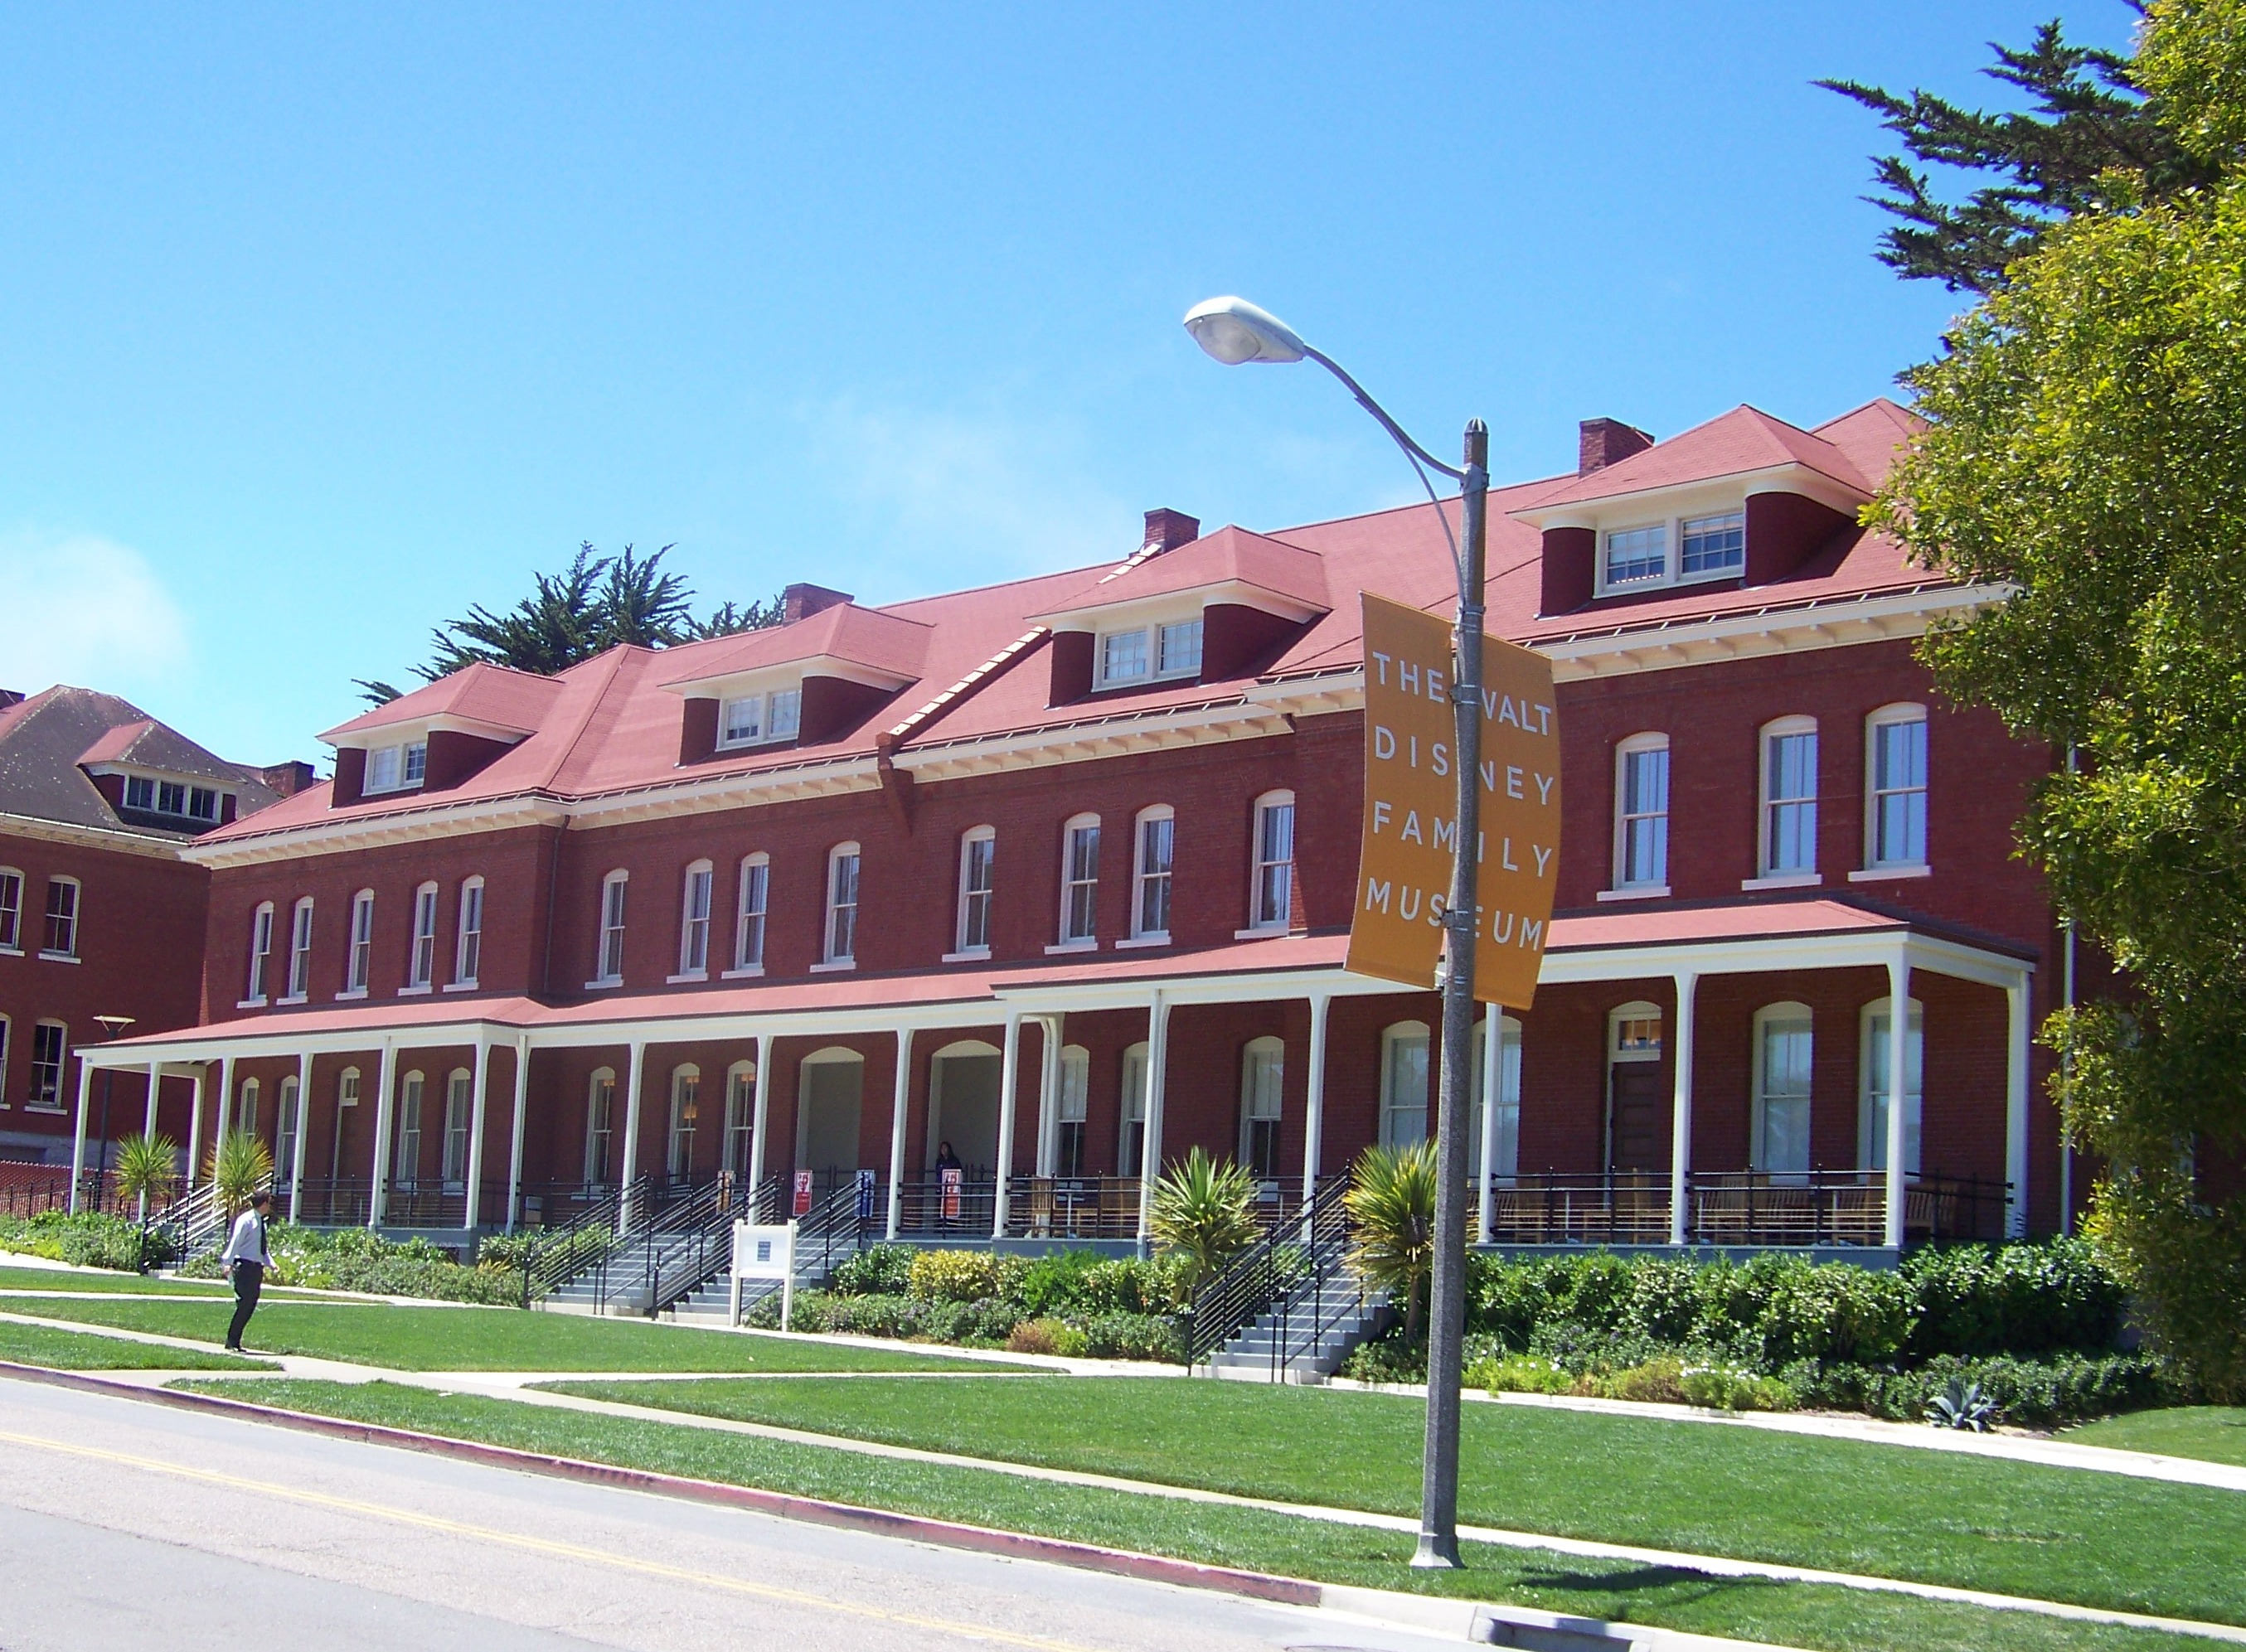 The brick building housing the Walt Disney Family Museum was constructed in 1897 and served as army barracks. Image obtained from Wikimedia.